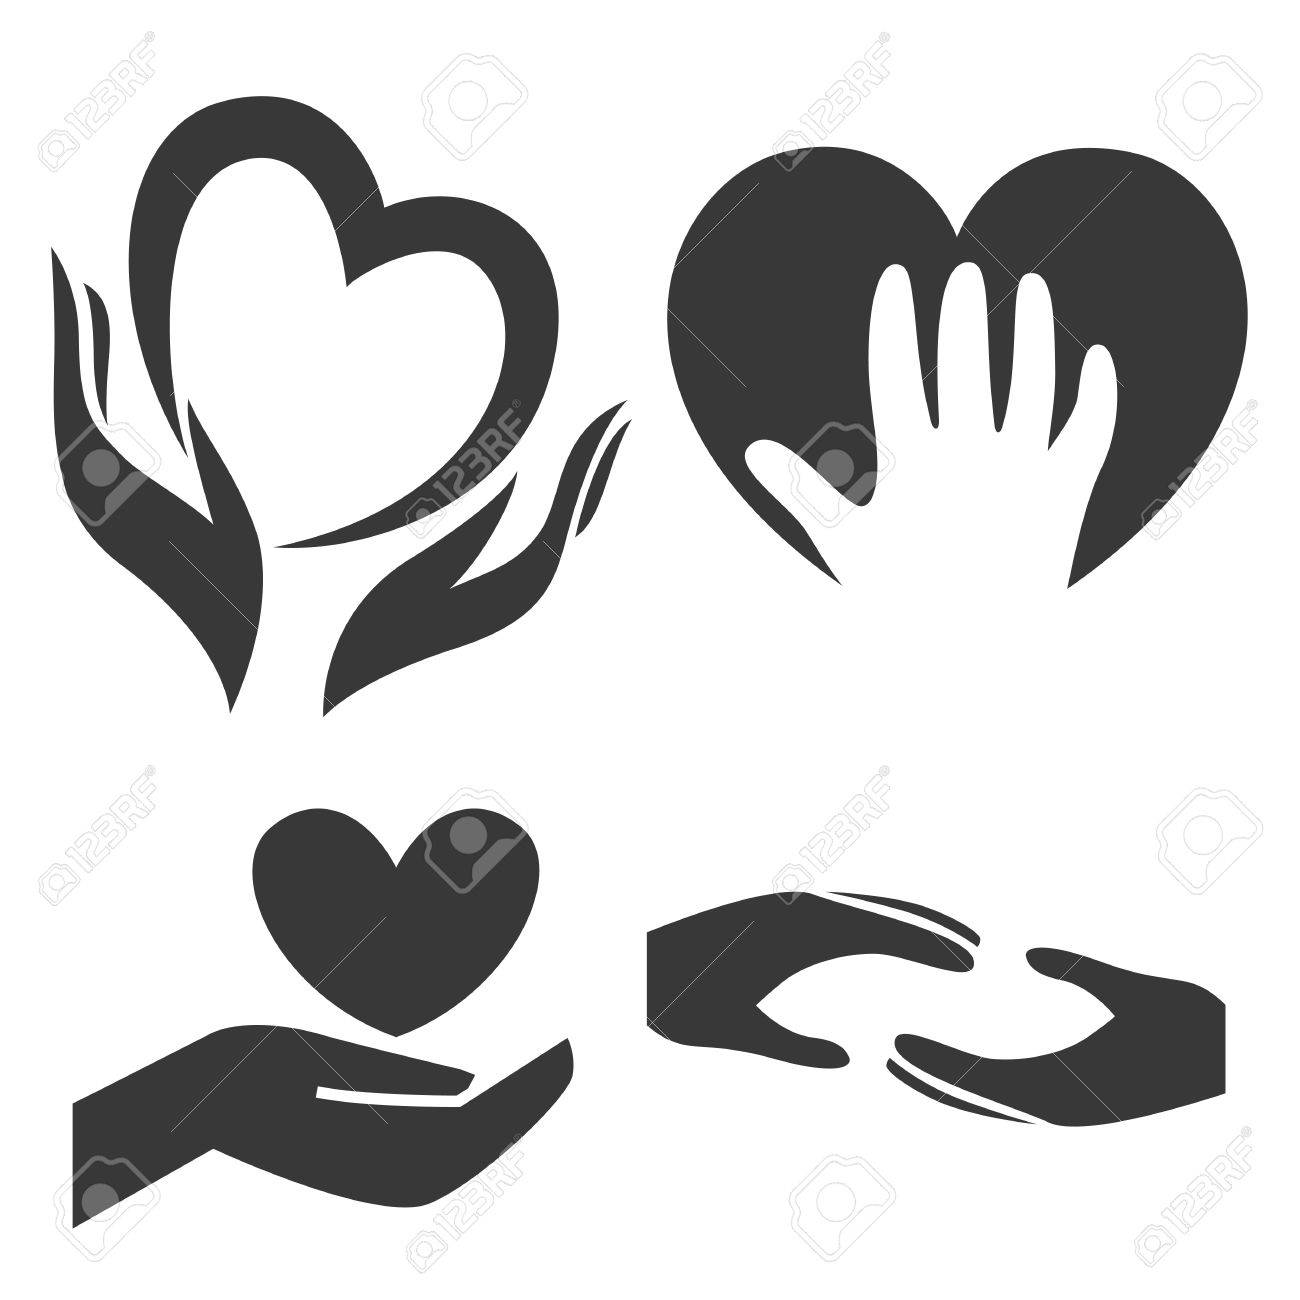 Heart in hand symbol sign icon template for charity health heart in hand symbol sign icon template for charity health voluntary biocorpaavc